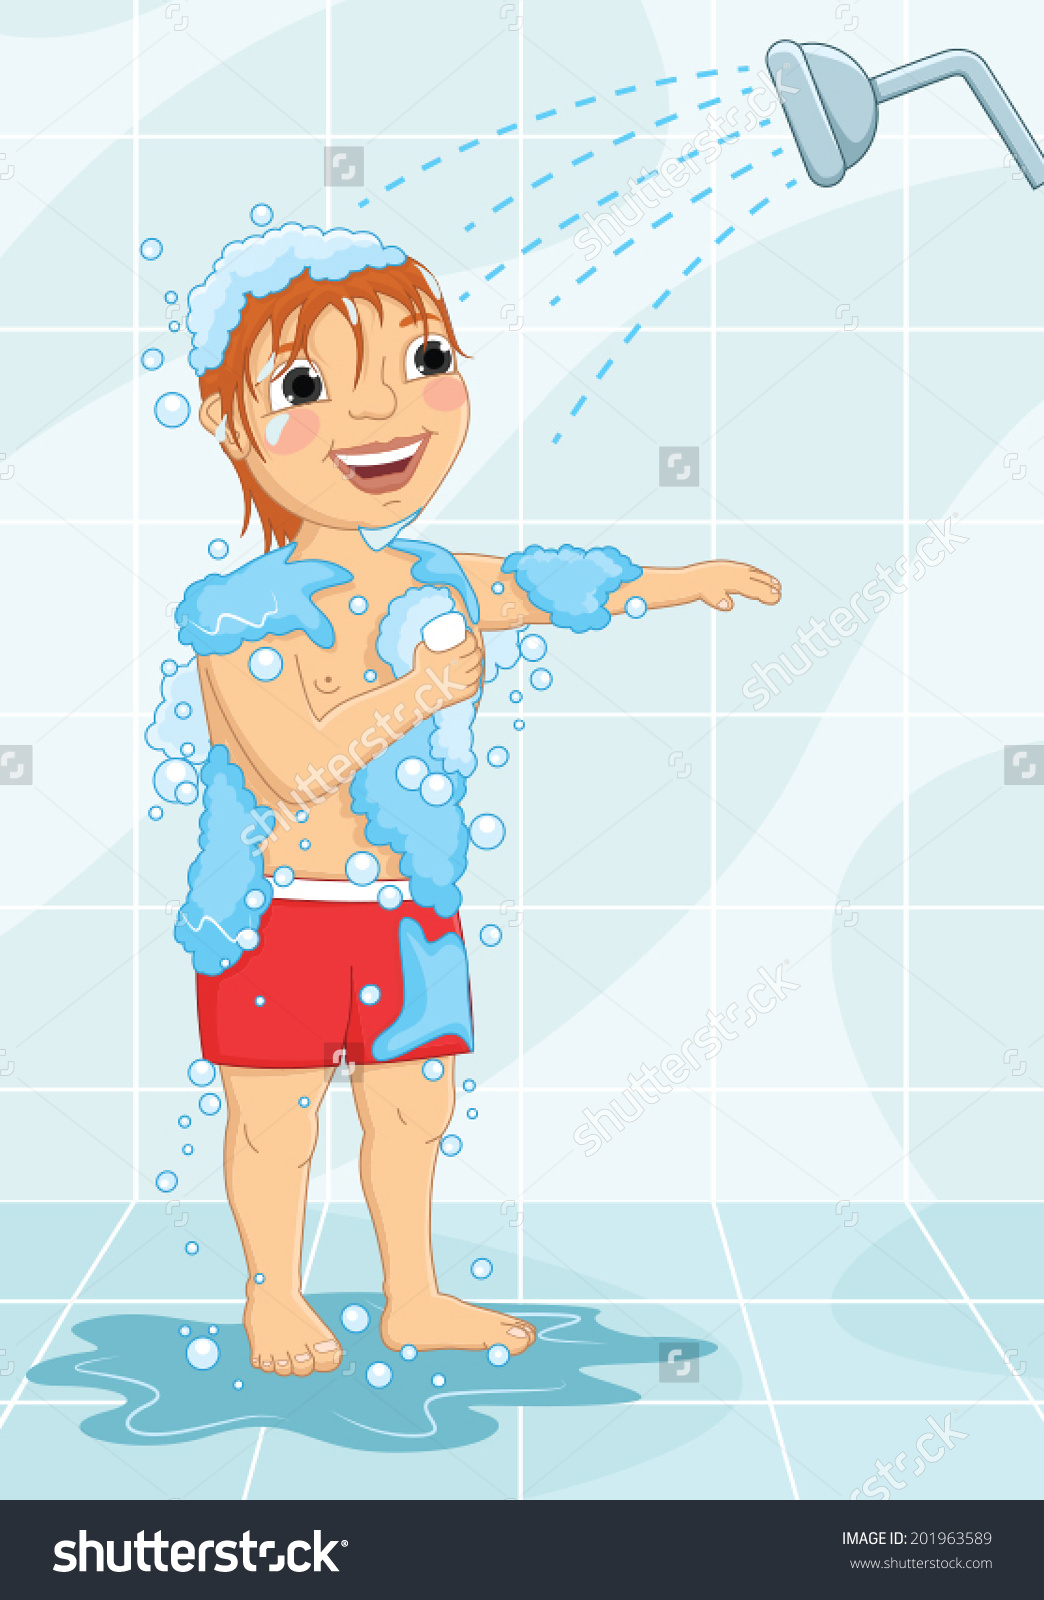 Young Boy Having Shower Vector Illustration Stock Vector 201963589.